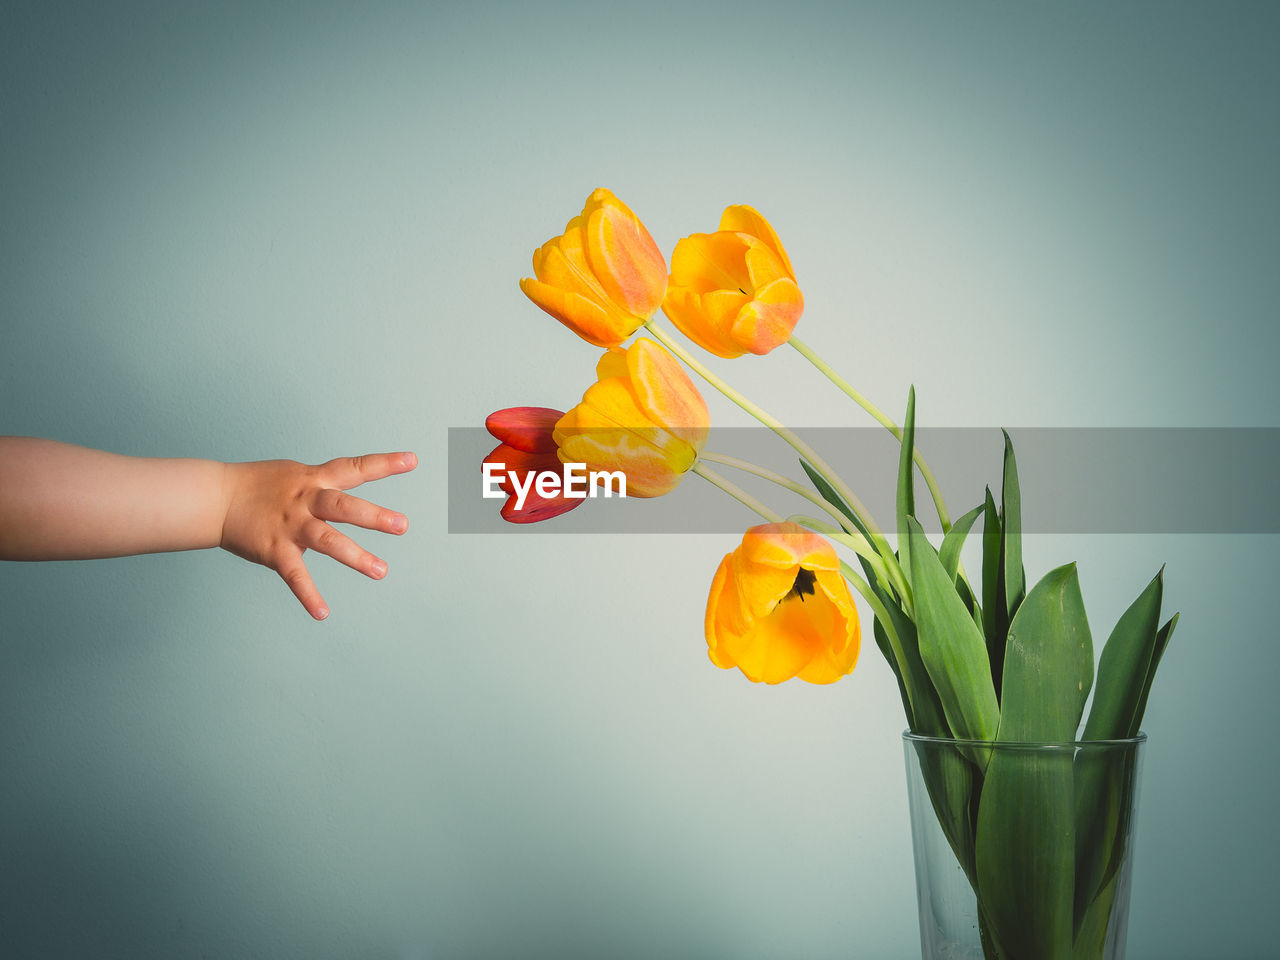 Cropped hand of child reaching towards tulips against green background